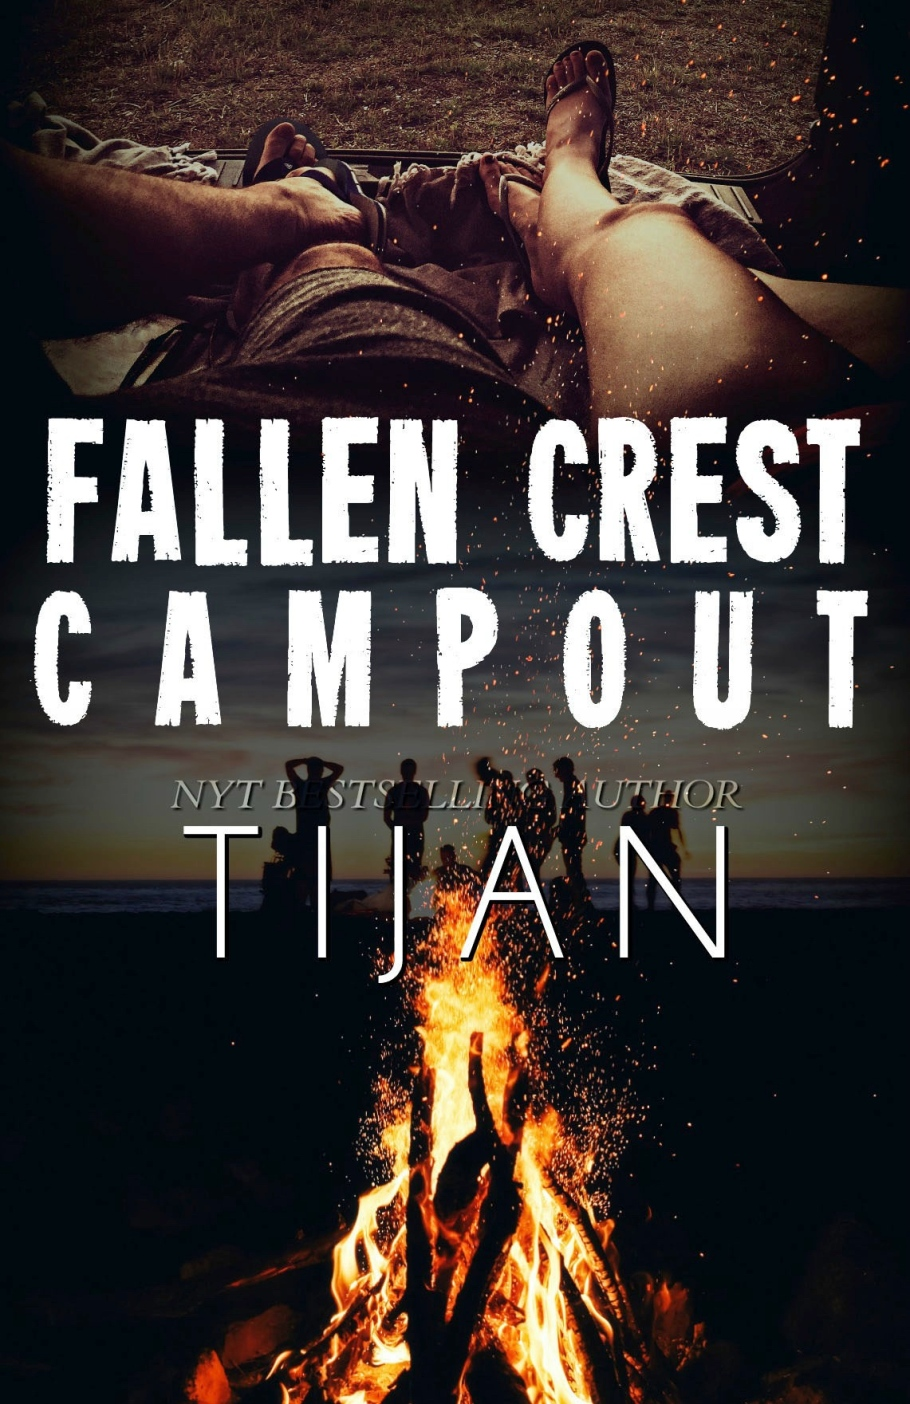 Fallen-Crest-Campout-Kindle.jpg